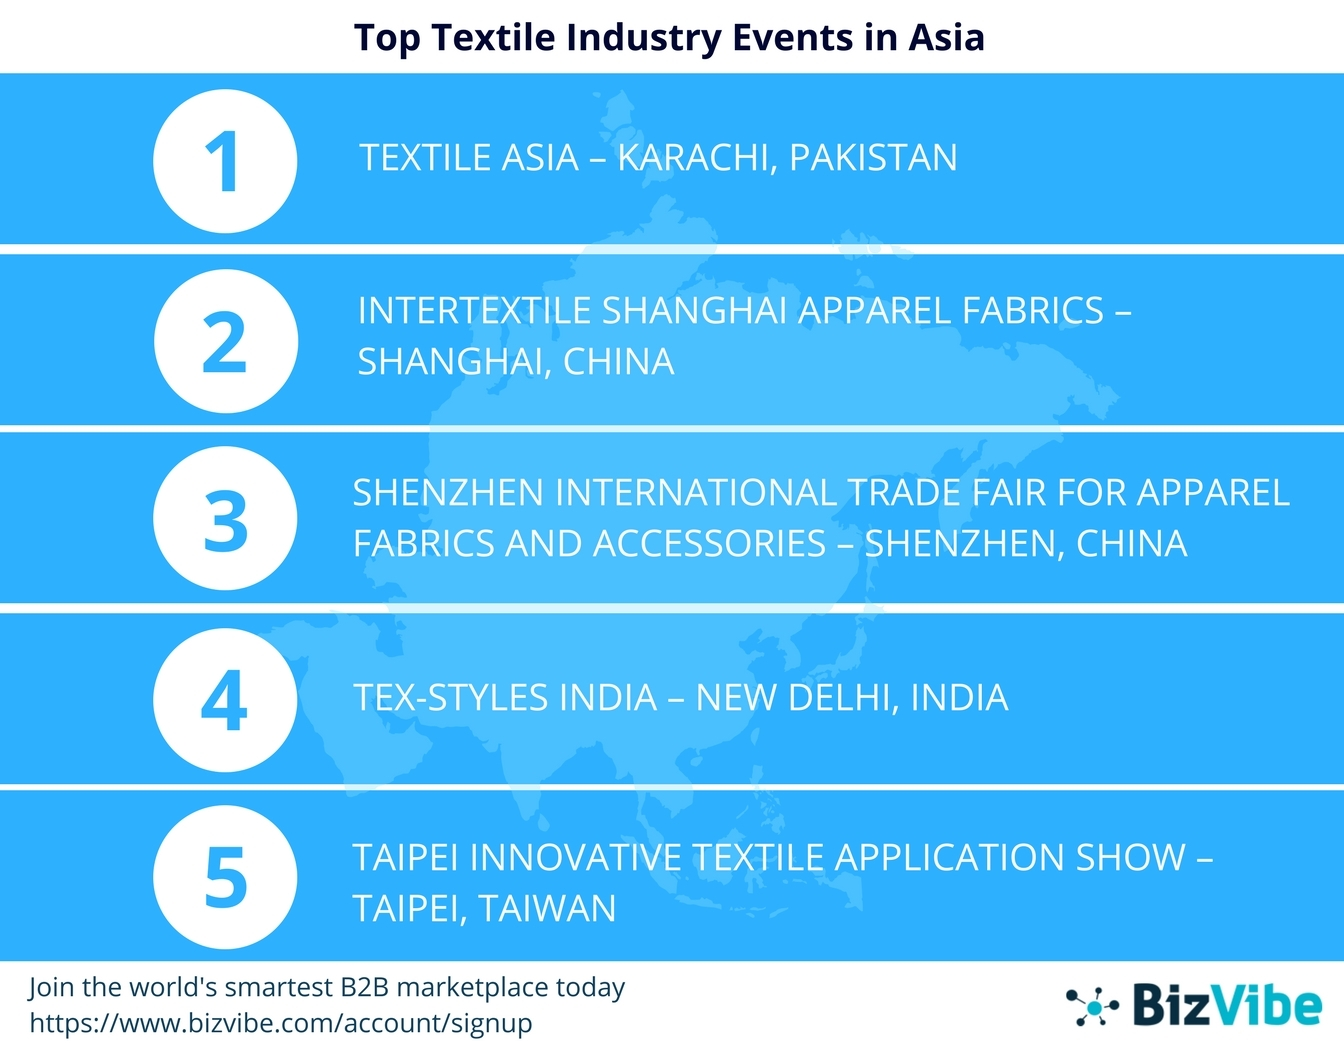 BizVibe Announces Their List of Top 10 Textile Industry